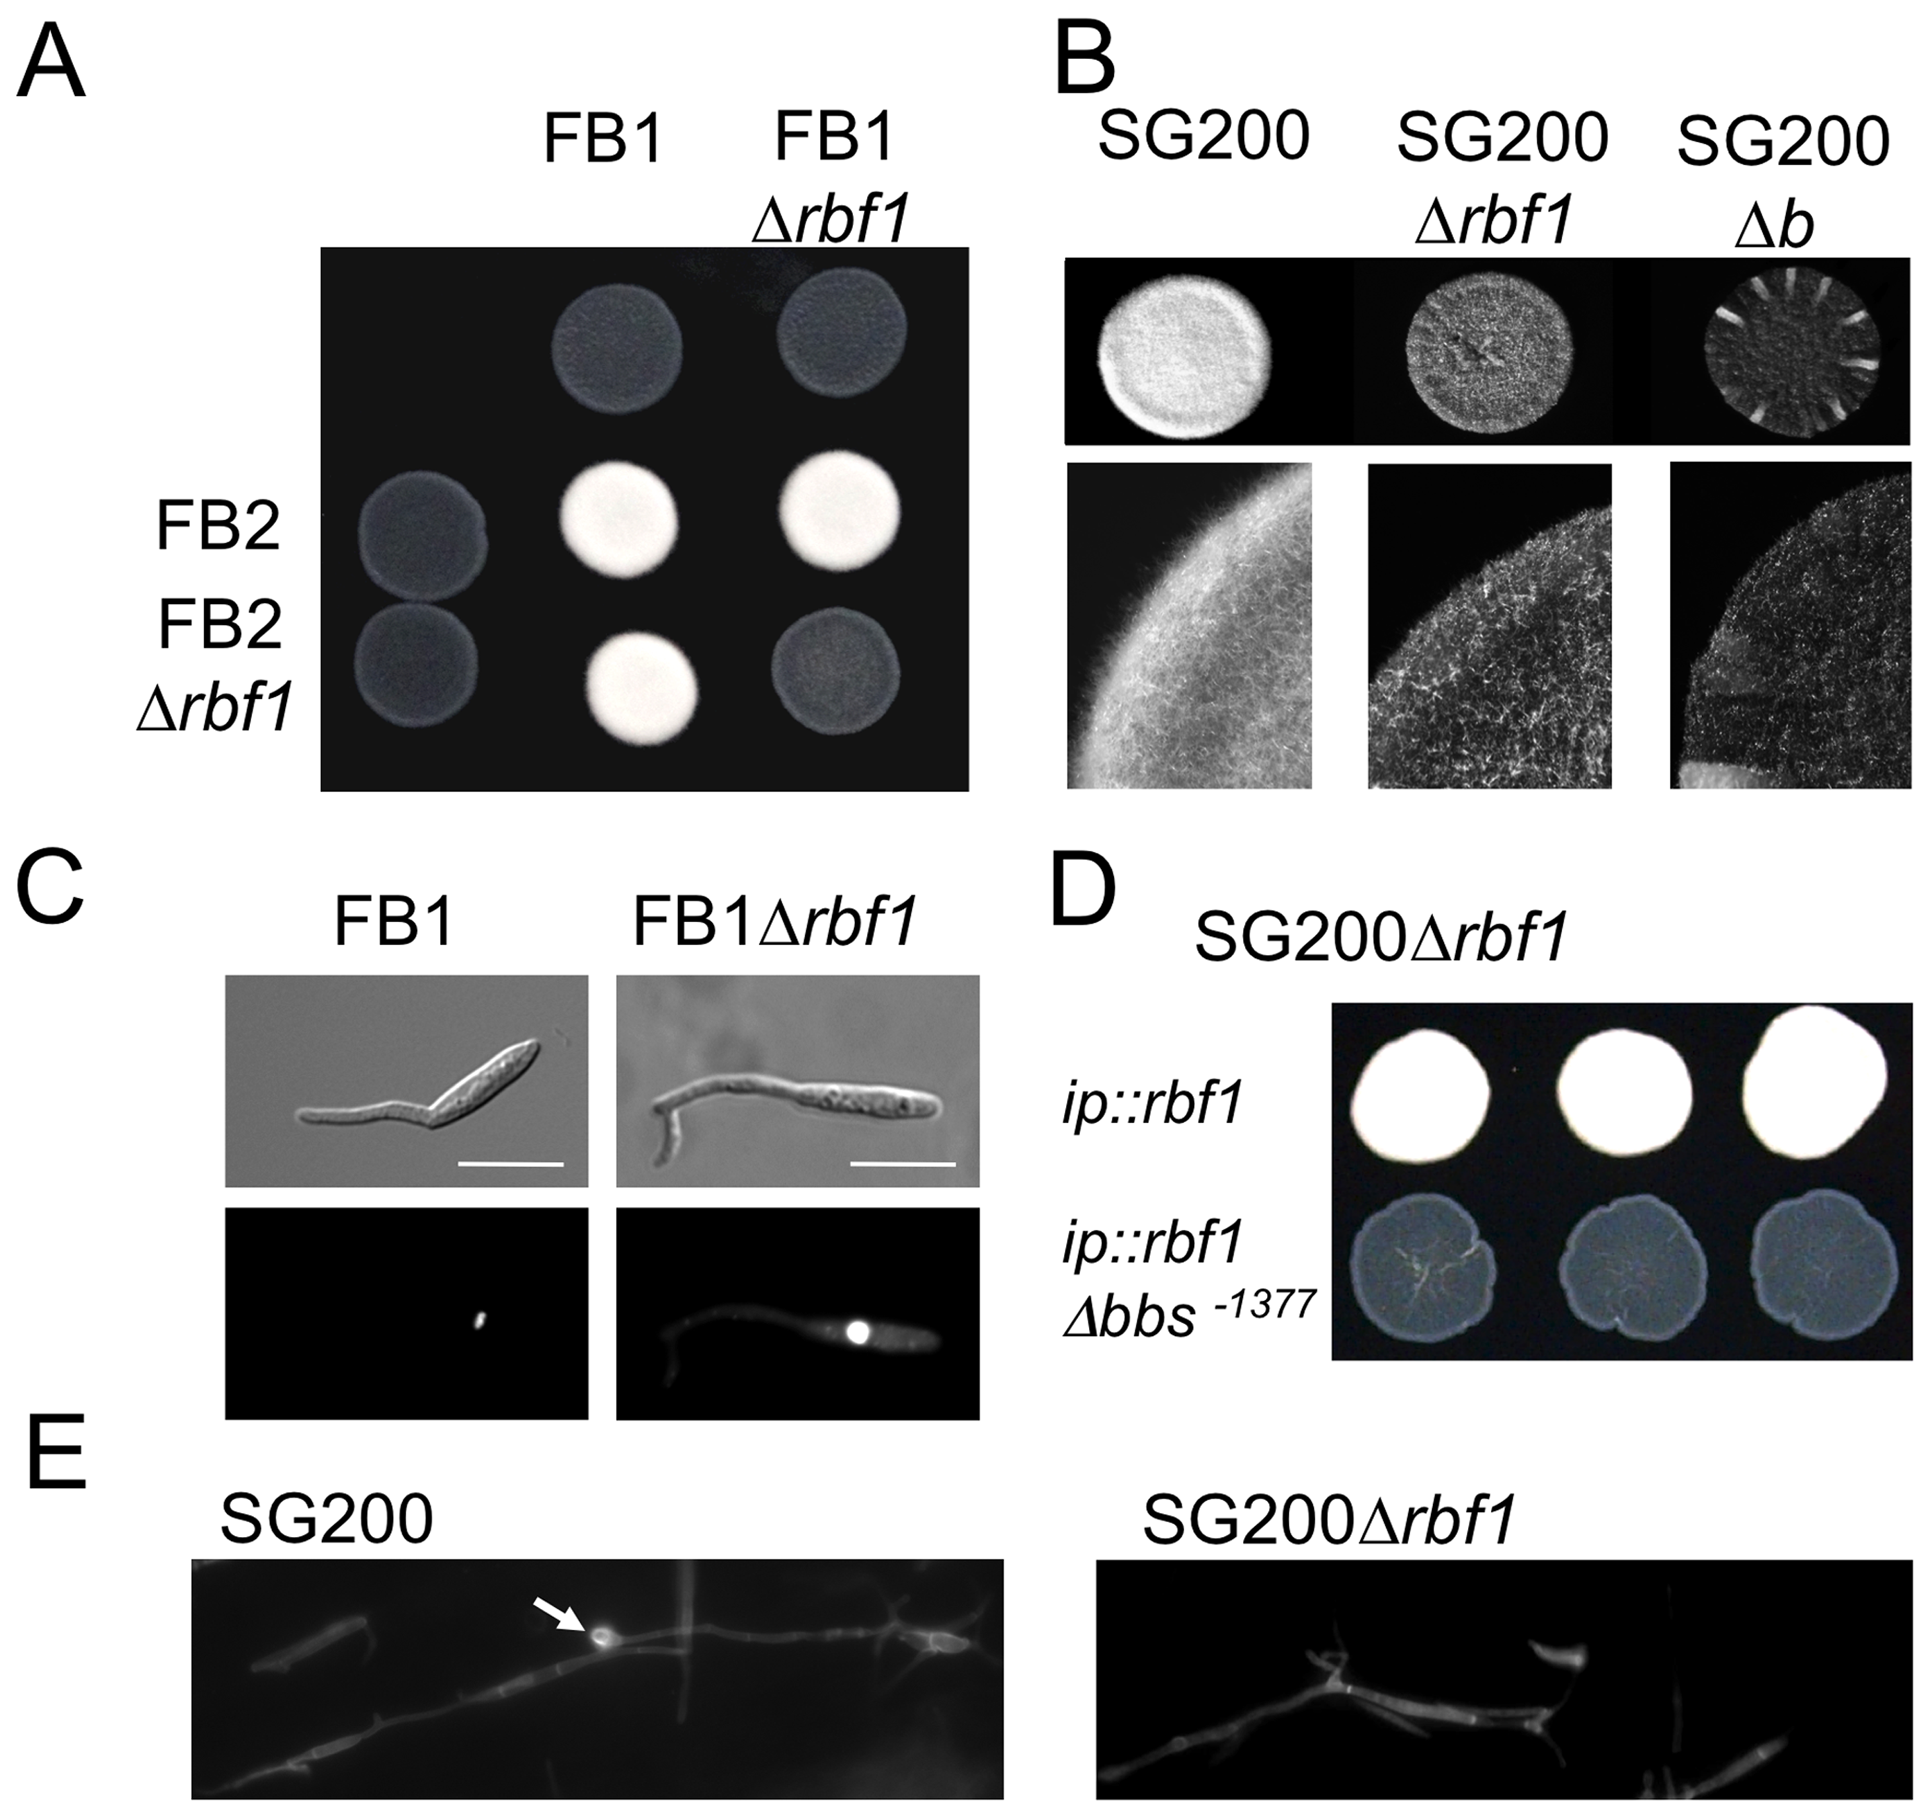 Rbf1 is required for <i>b</i>-dependent filament formation.